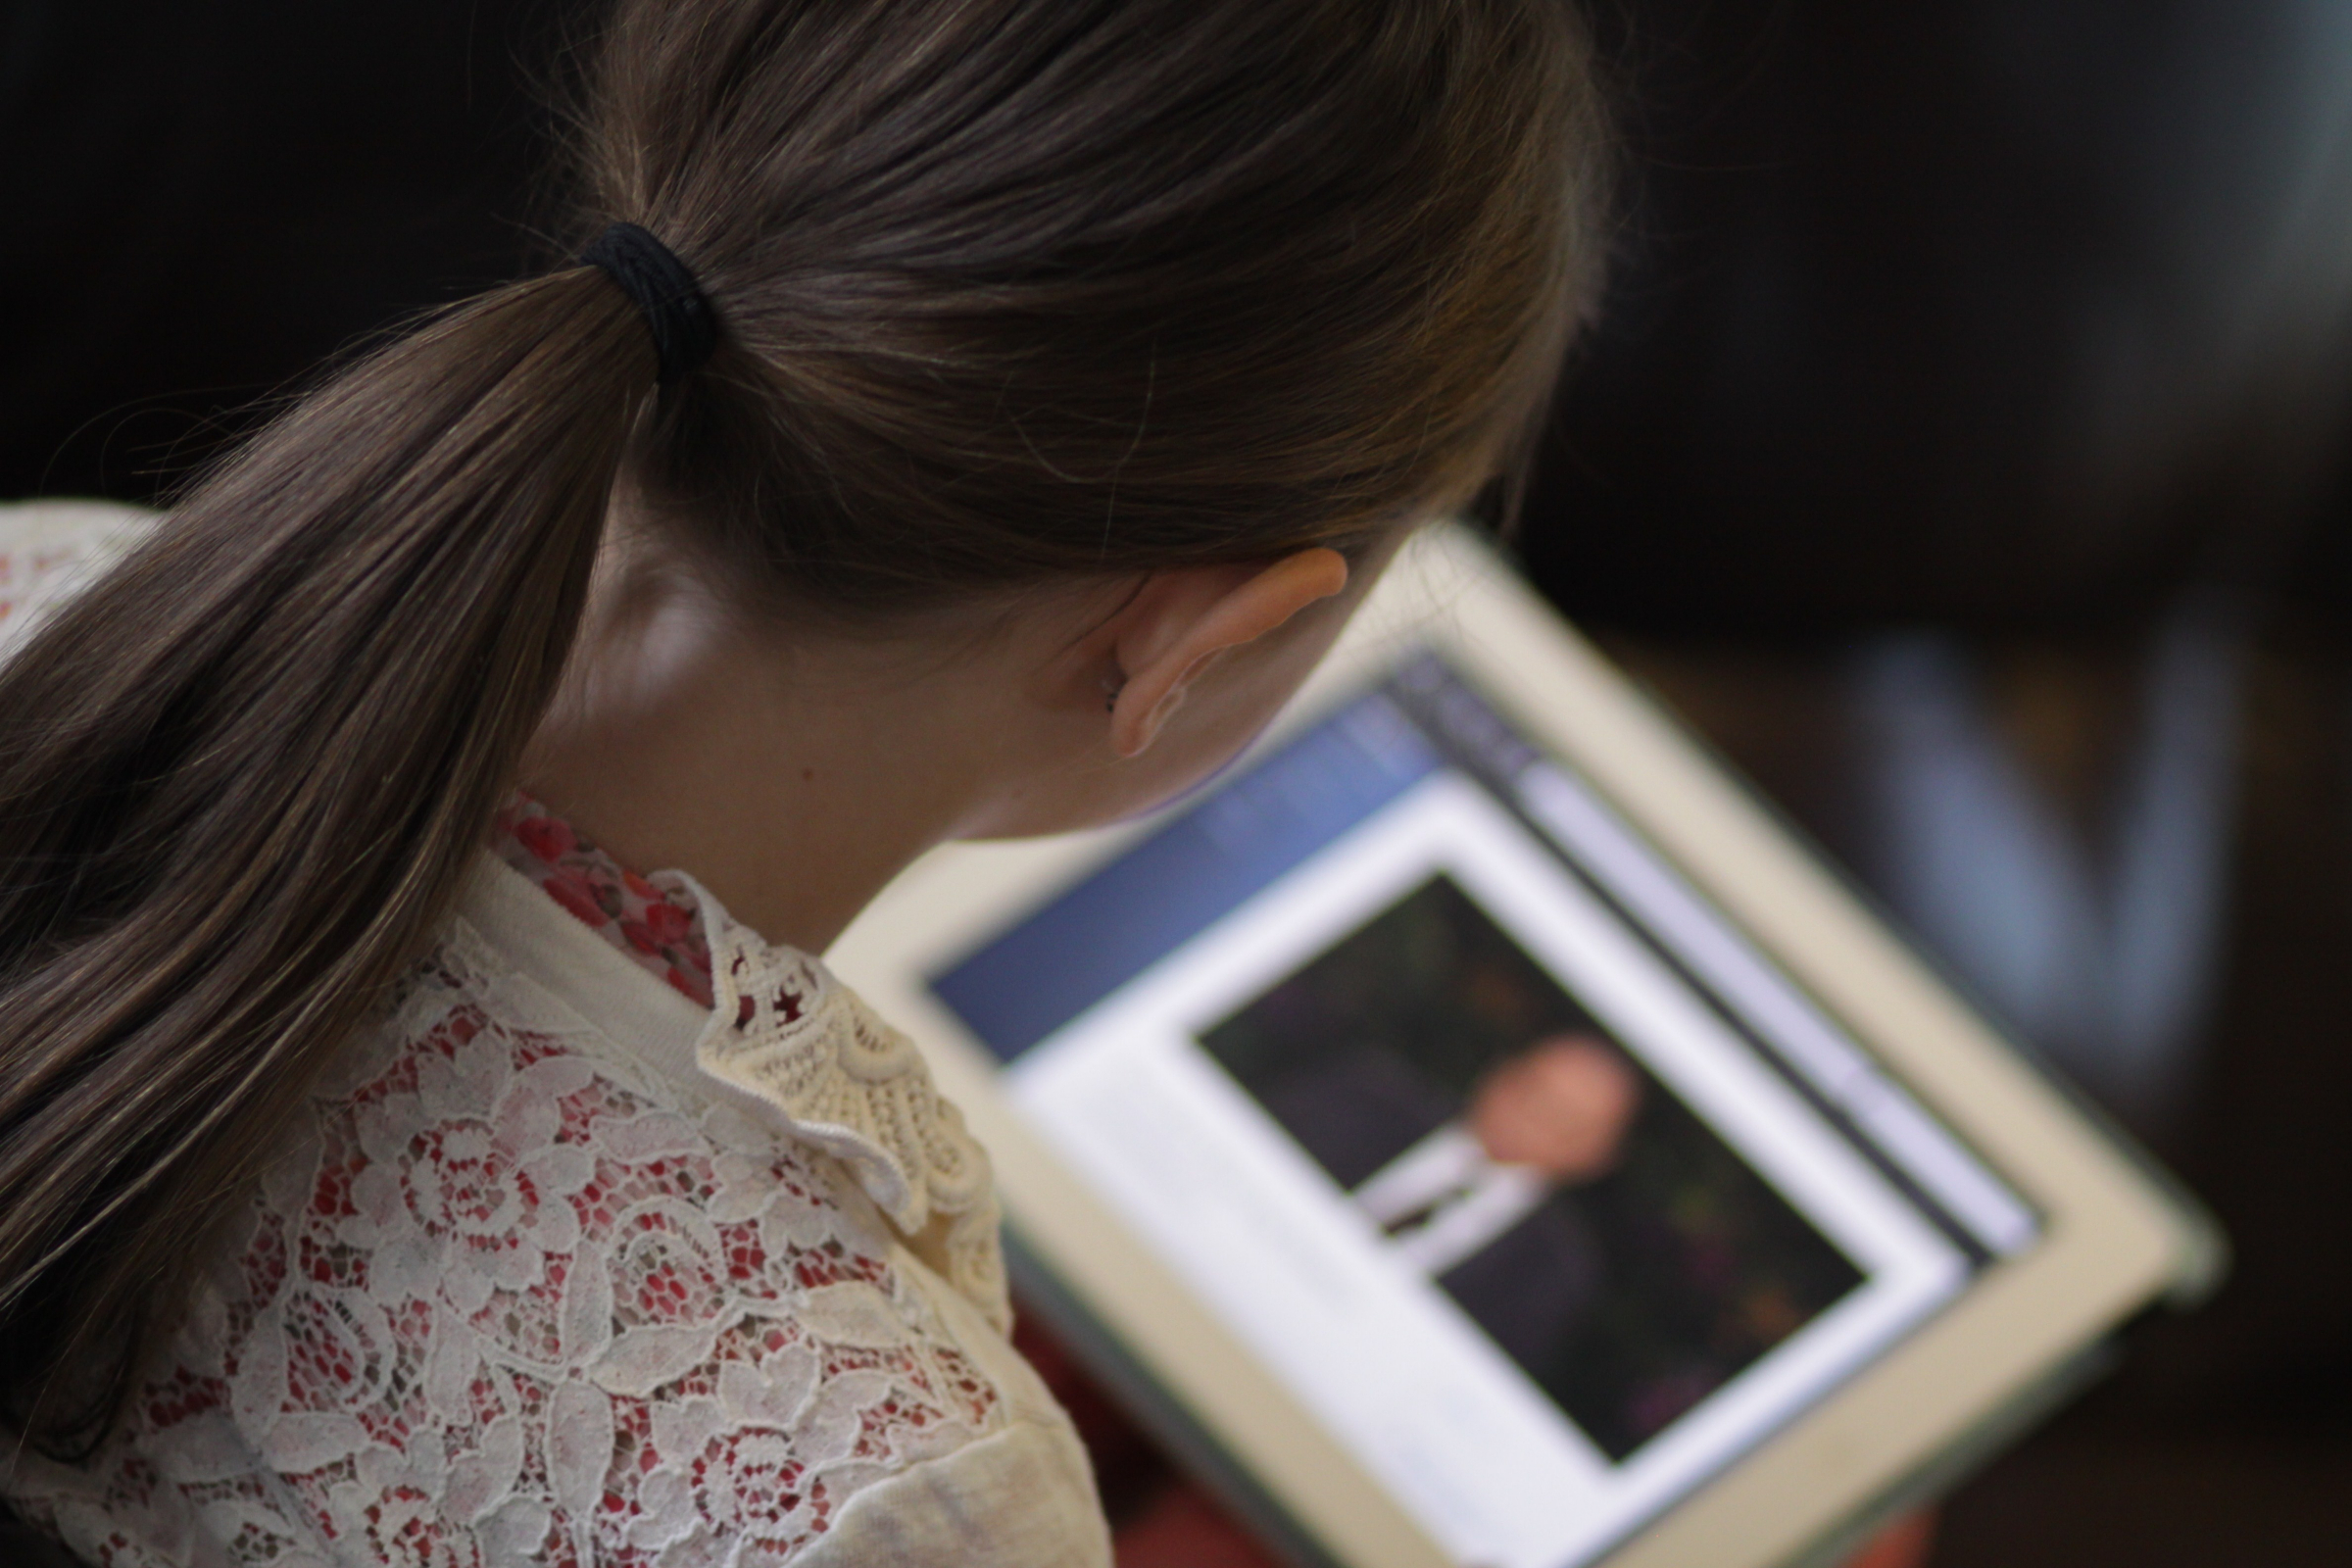 A young girl watches general conference on a tablet.